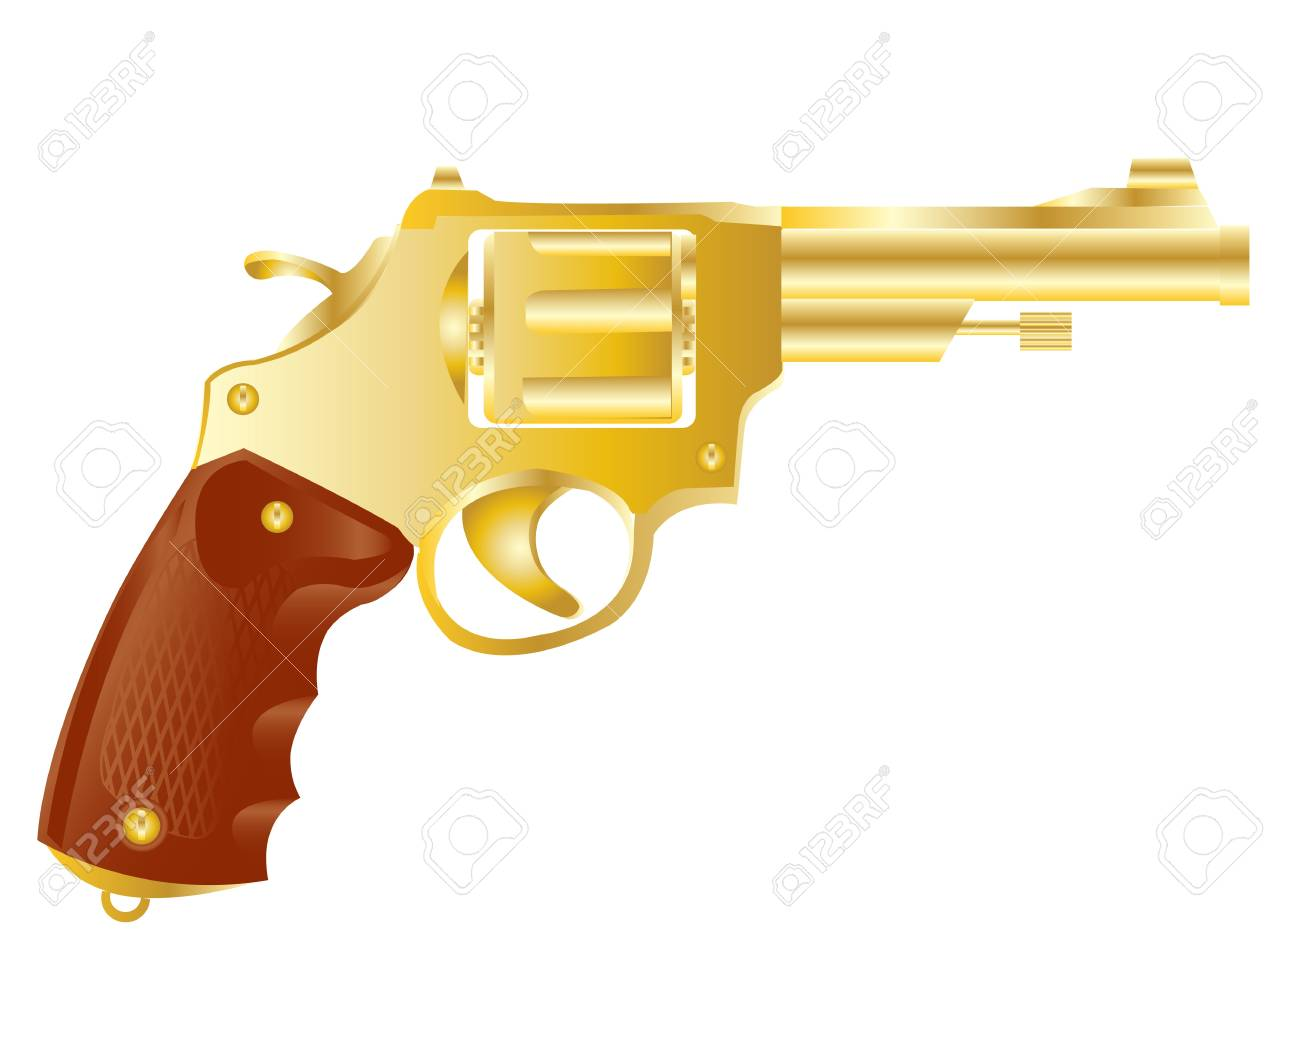 Illustration of the weapon revolver from gild on white background. Stock Vector - 17513267